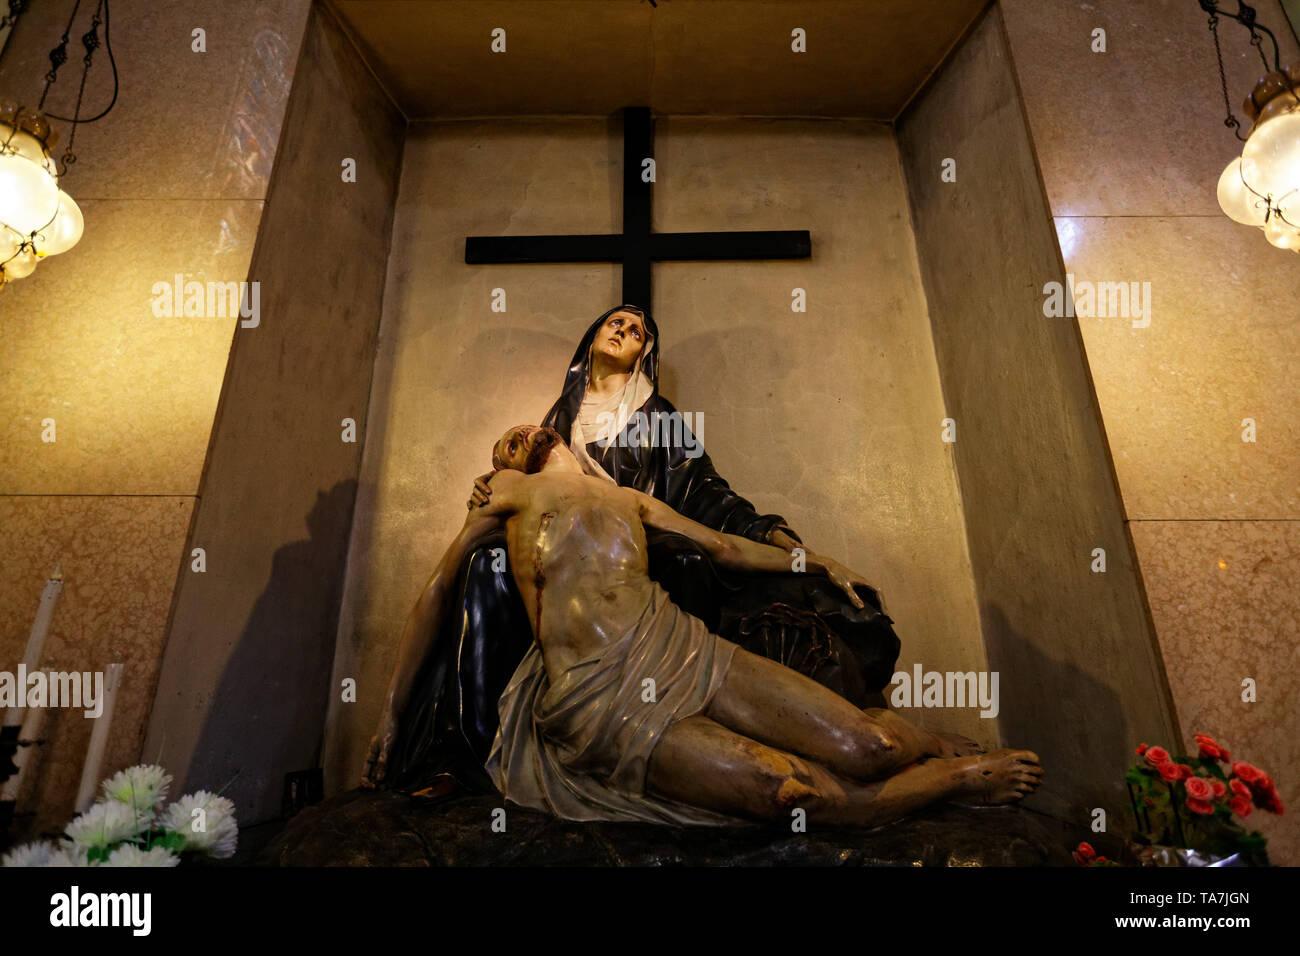 The Pietà shown inside the Turin's cathedral. MLBARIONA/Alamy Stock Photos - Stock Image